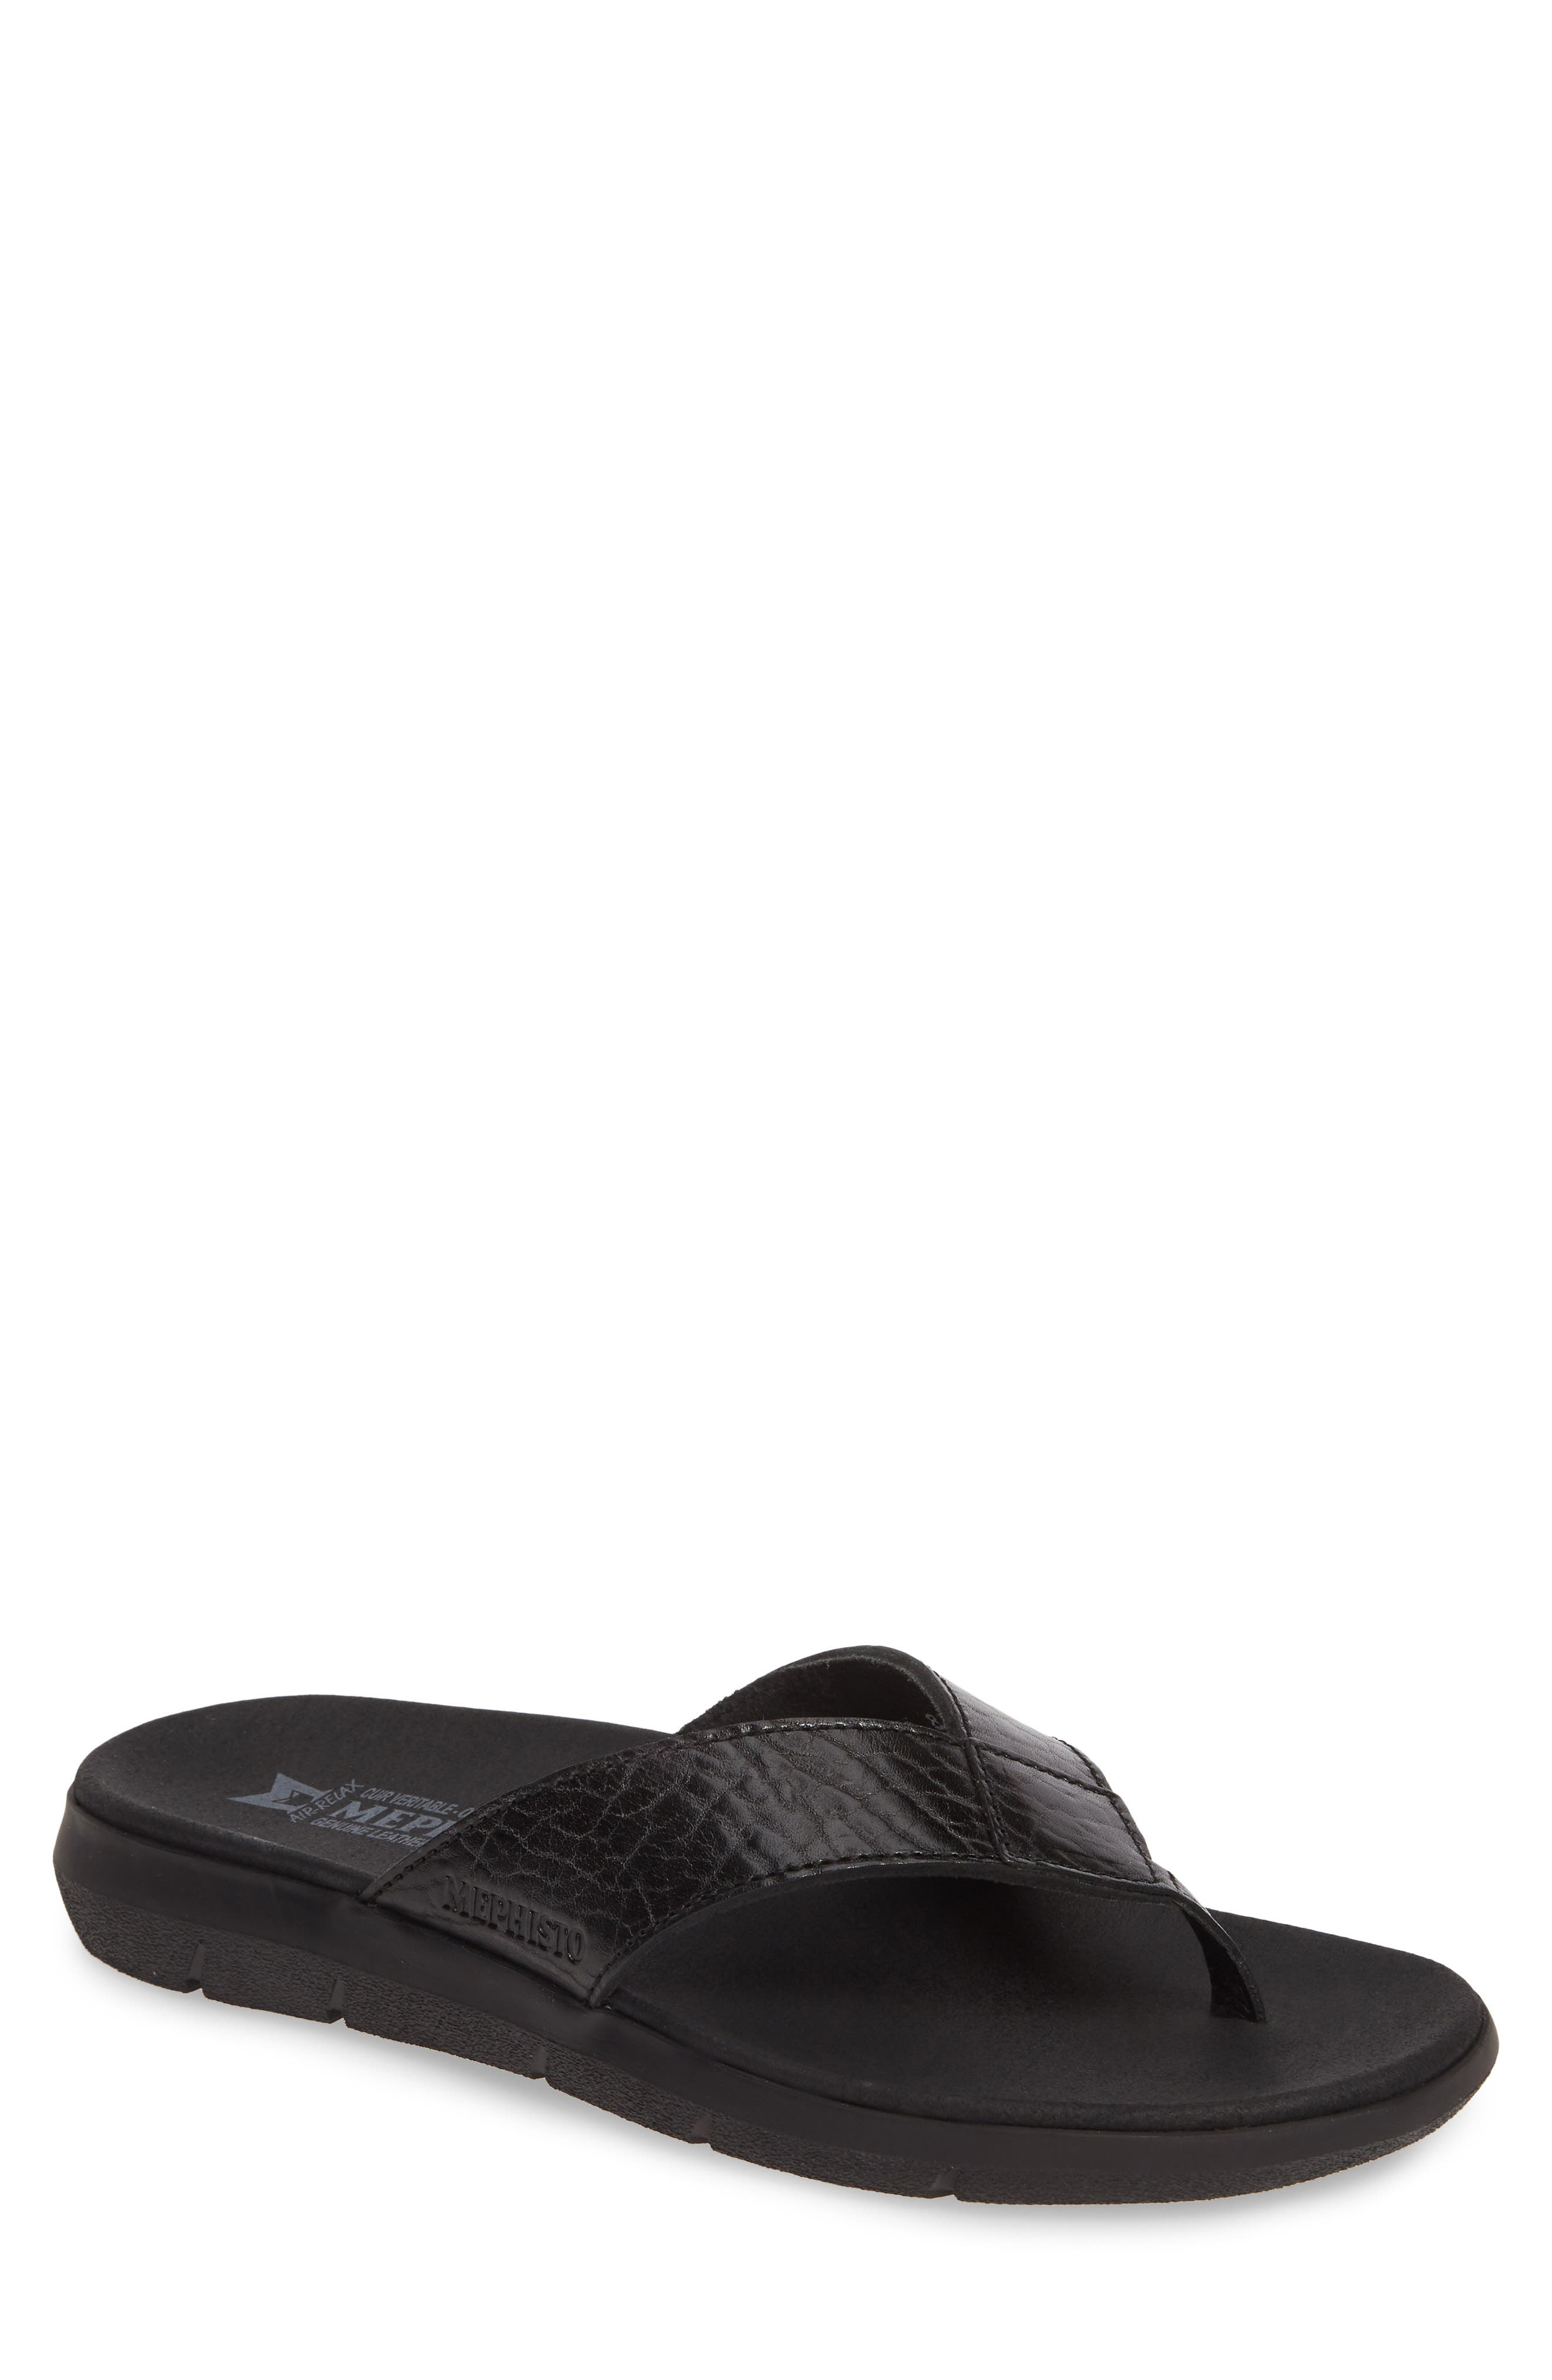 ,                             Charly Flip Flop,                             Main thumbnail 1, color,                             BLACK LEATHER